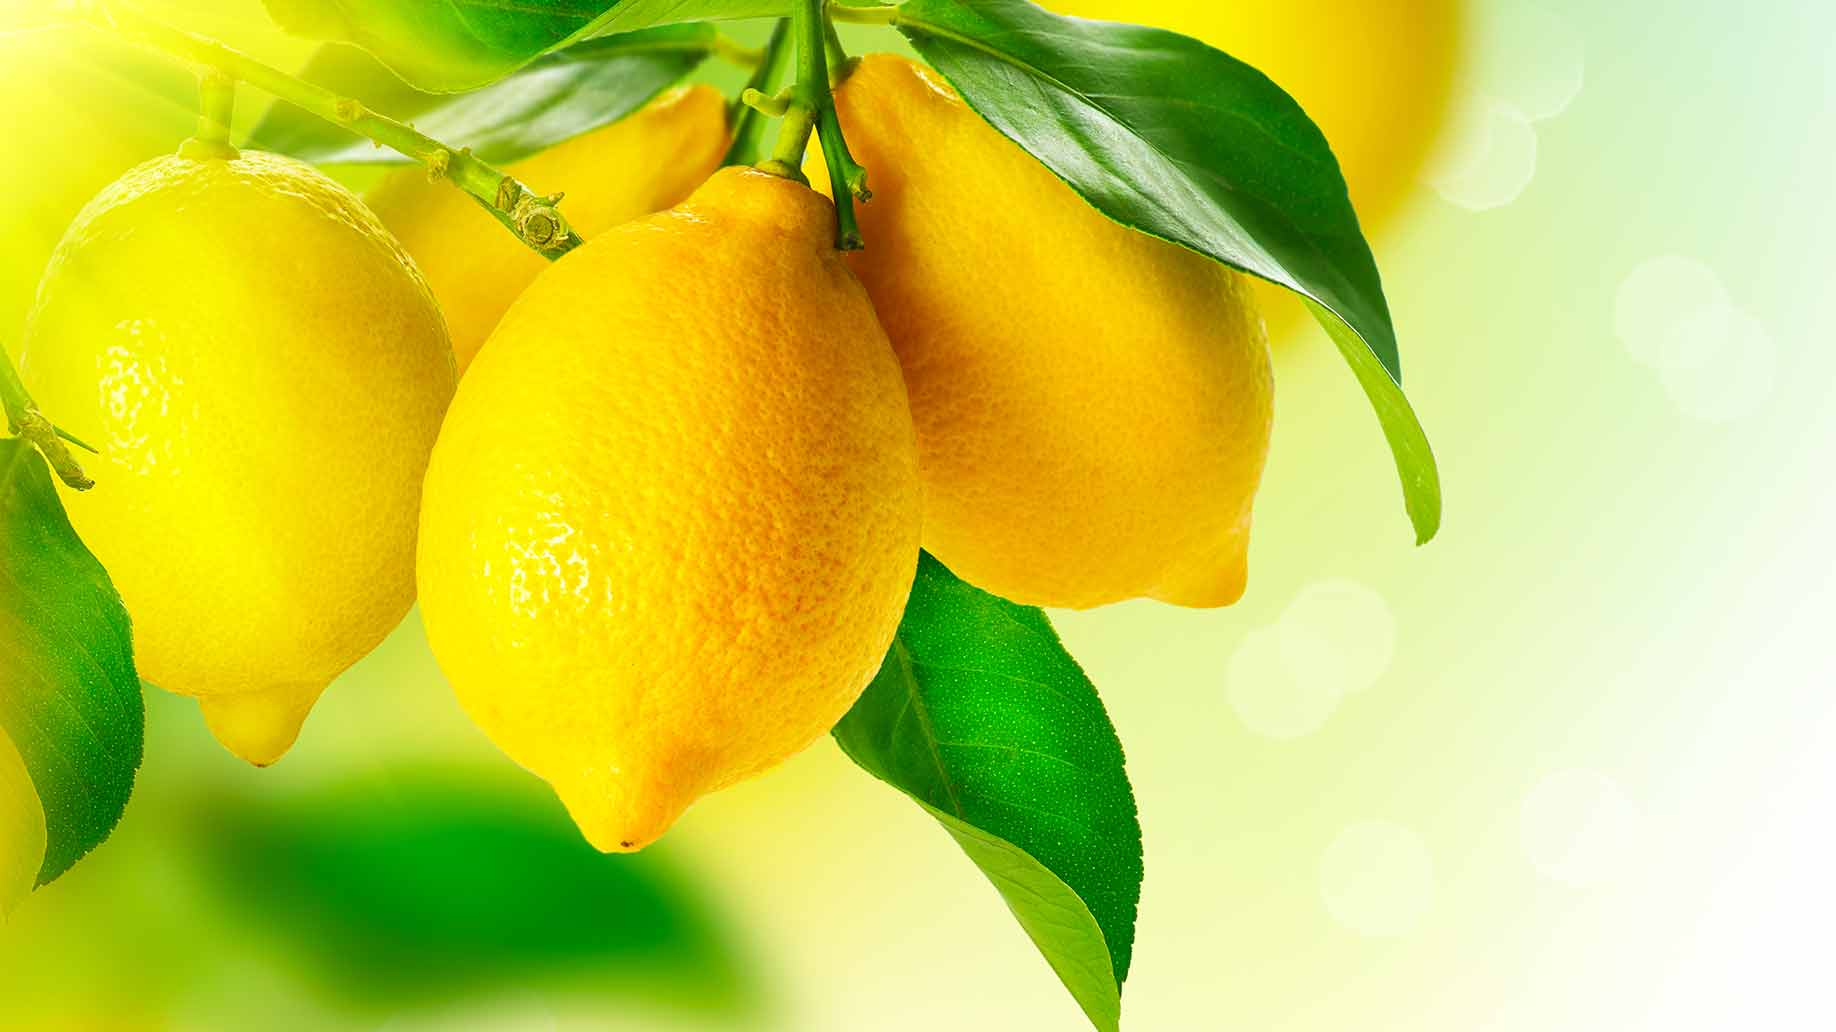 fresh lemons citrus fruits acid vitamin c for bad breath halitosis how to get rid of naturally